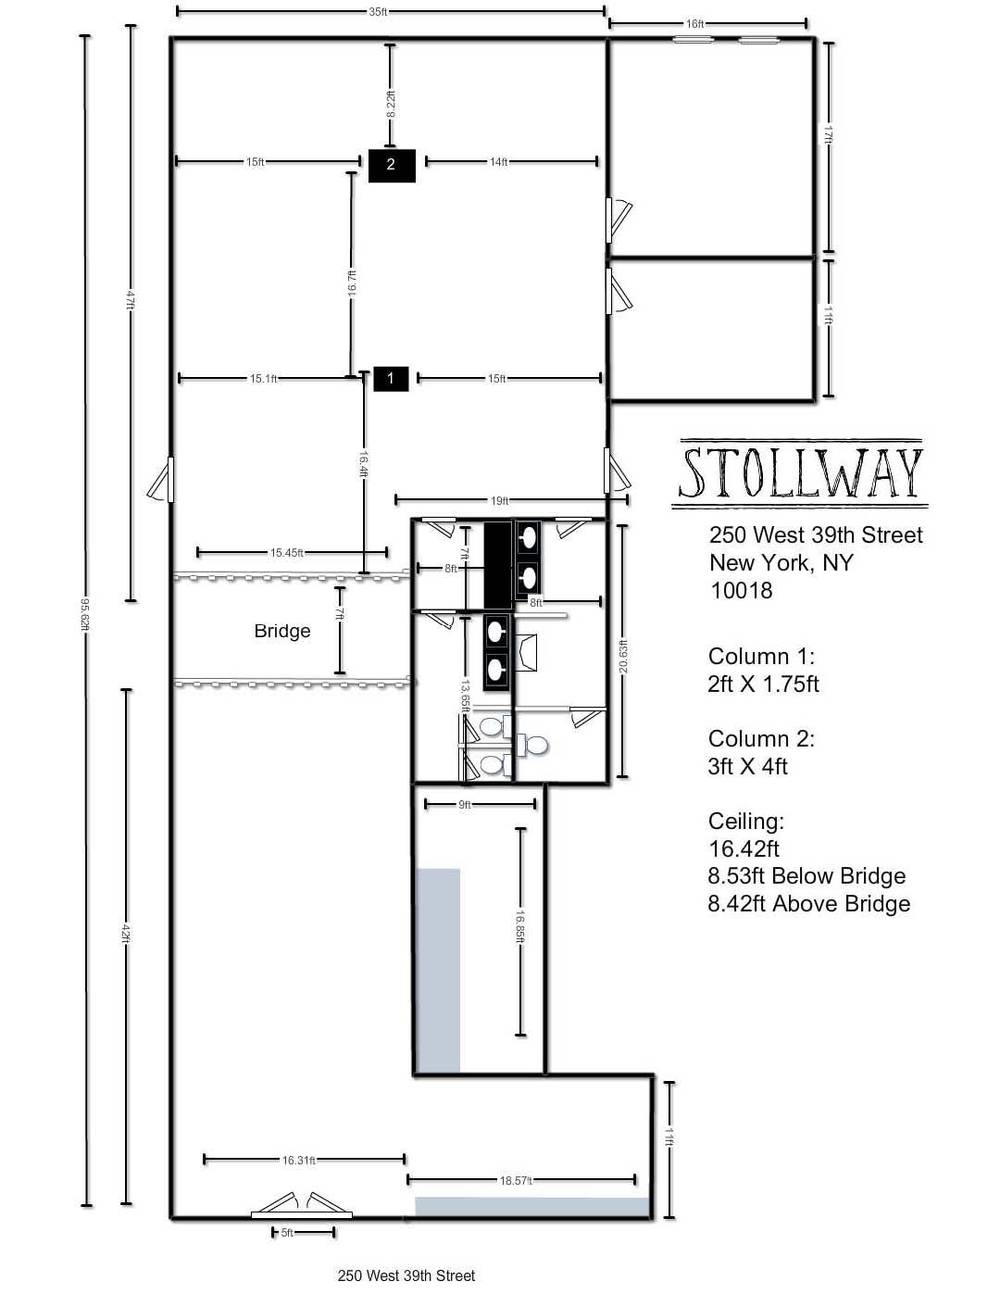 JPO Concepts Venue Floor Plan - Stollway.jpg